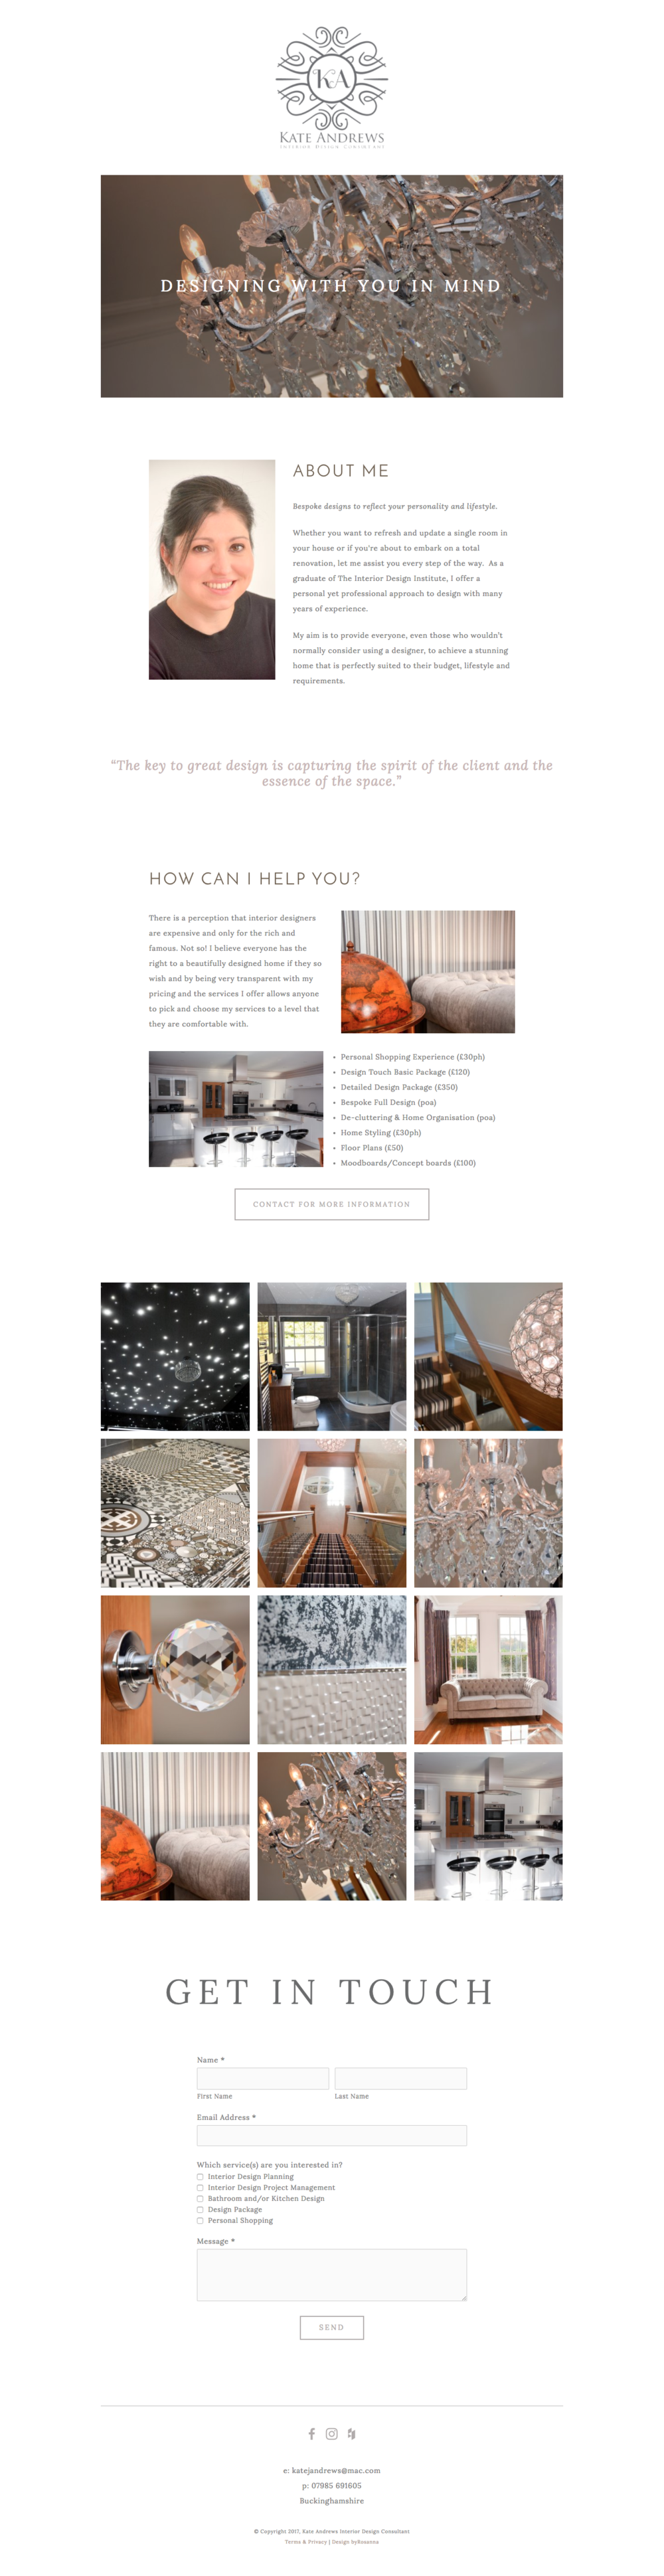 Kate Andrews Interior Design website design in Squarespace | byRosanna